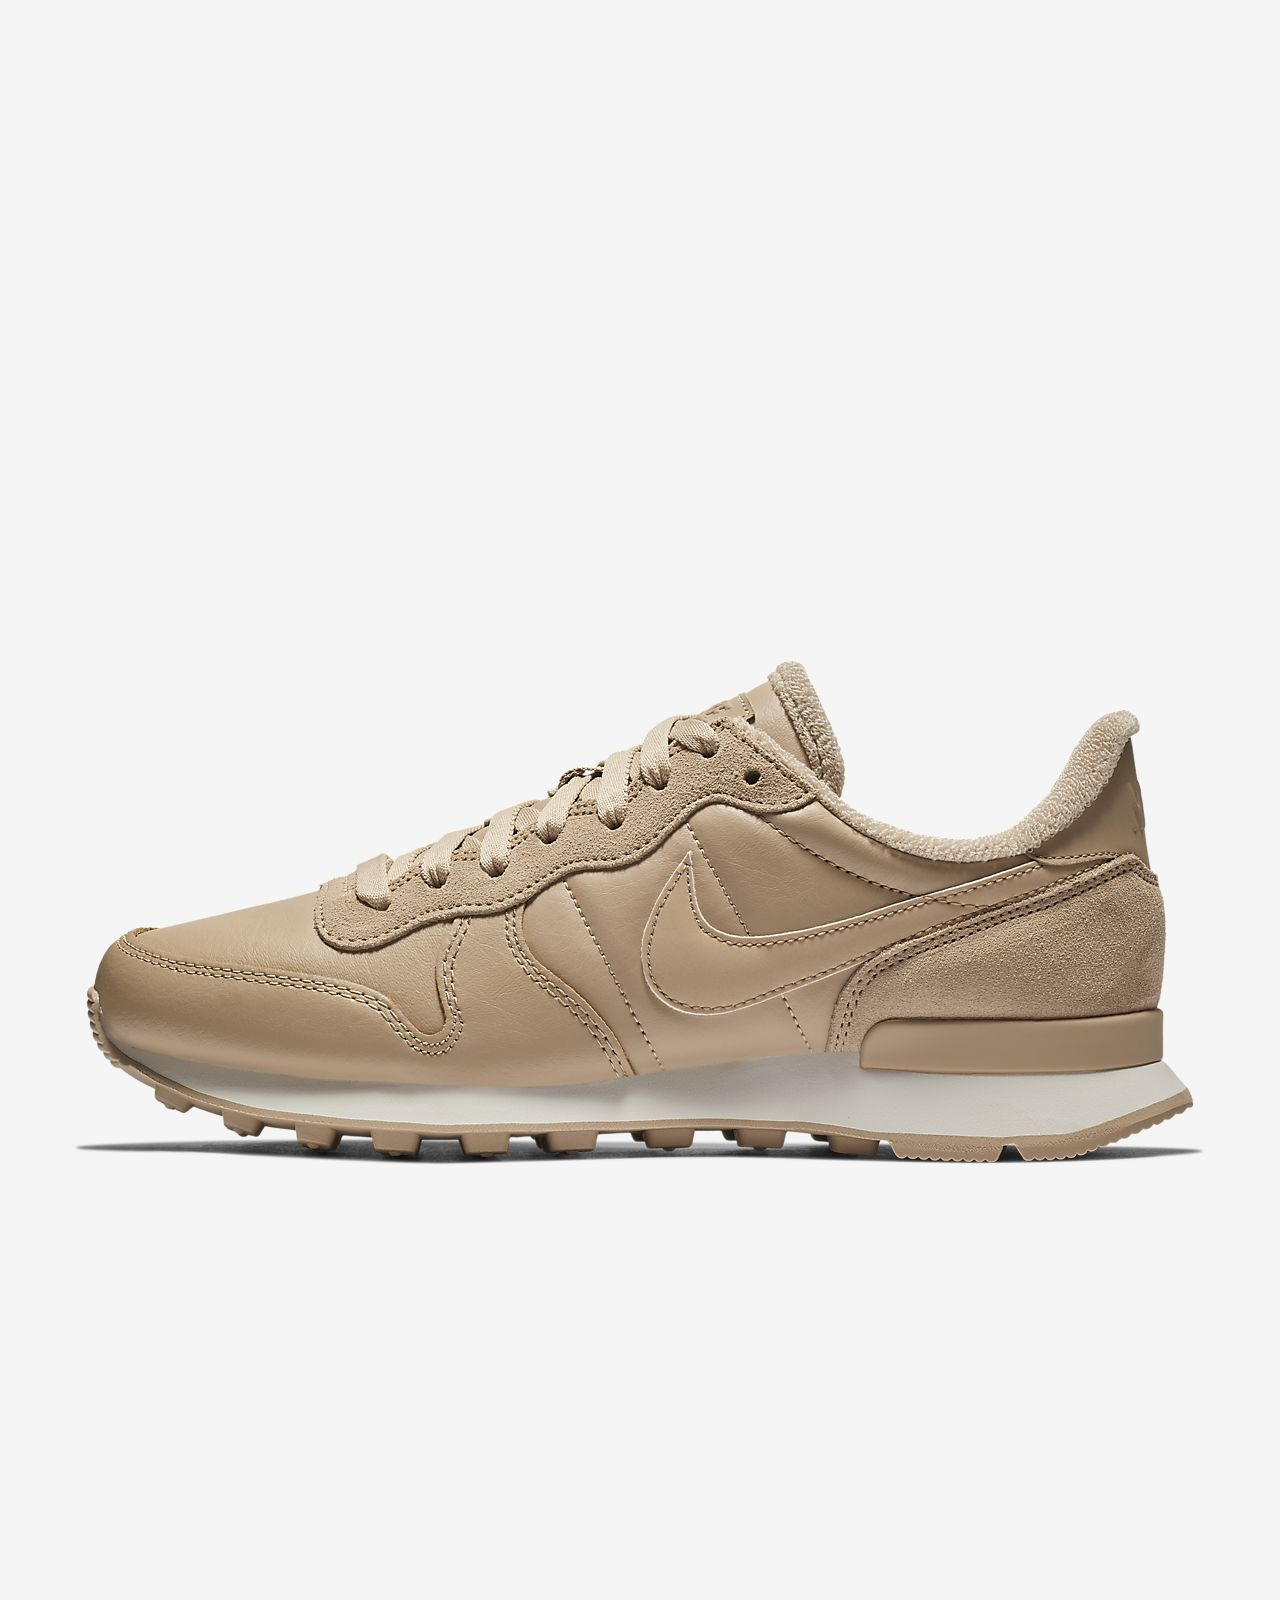 Nike Internationalist Winterized Women's Shoe